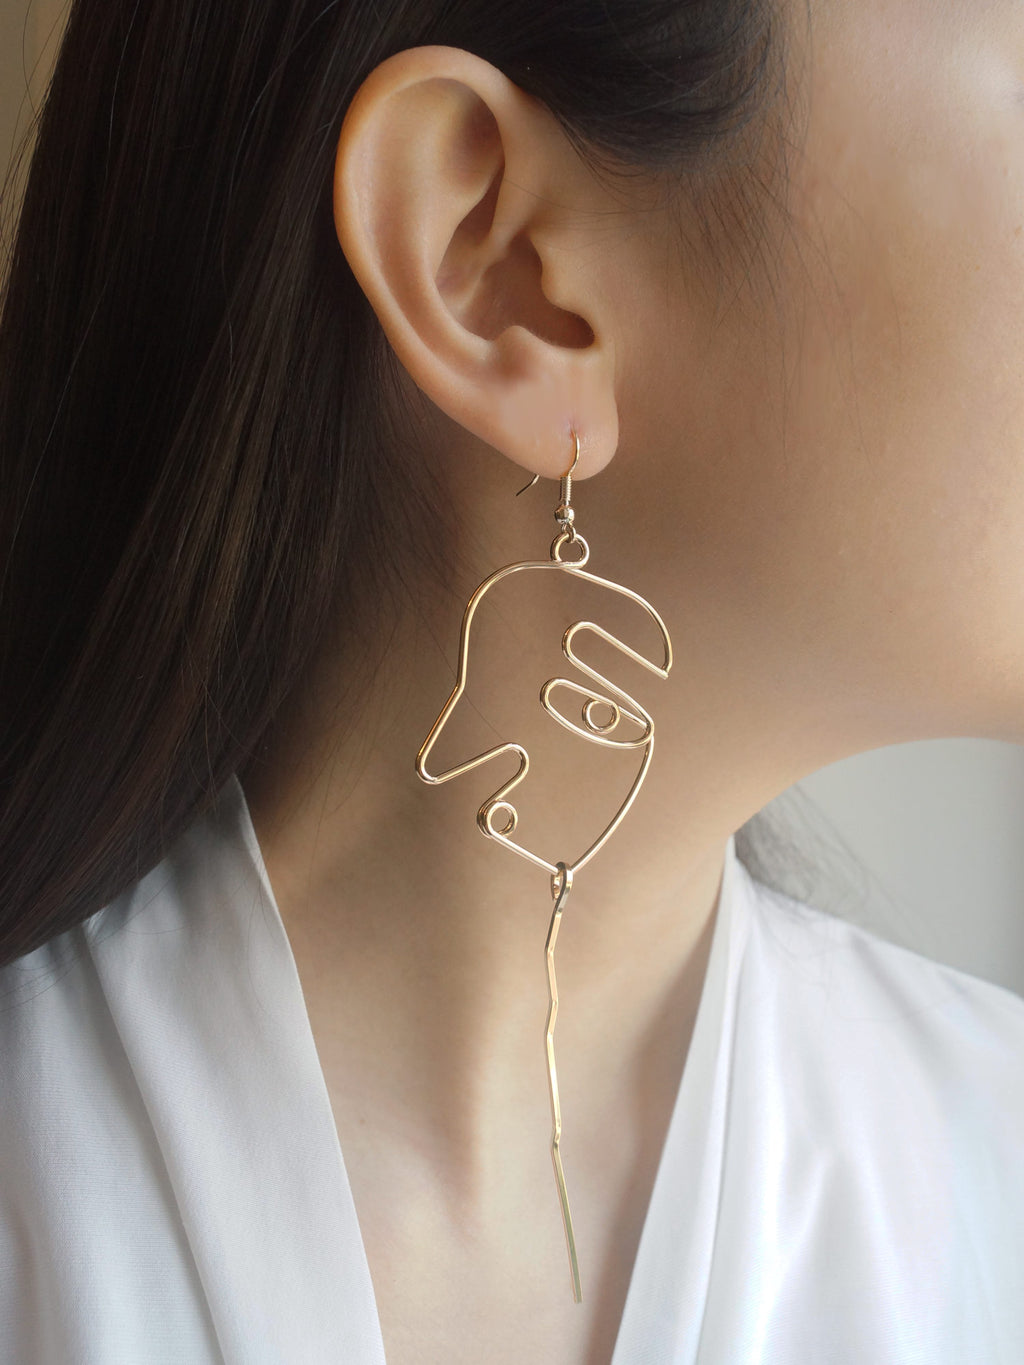 Mwo (Face) Earrings